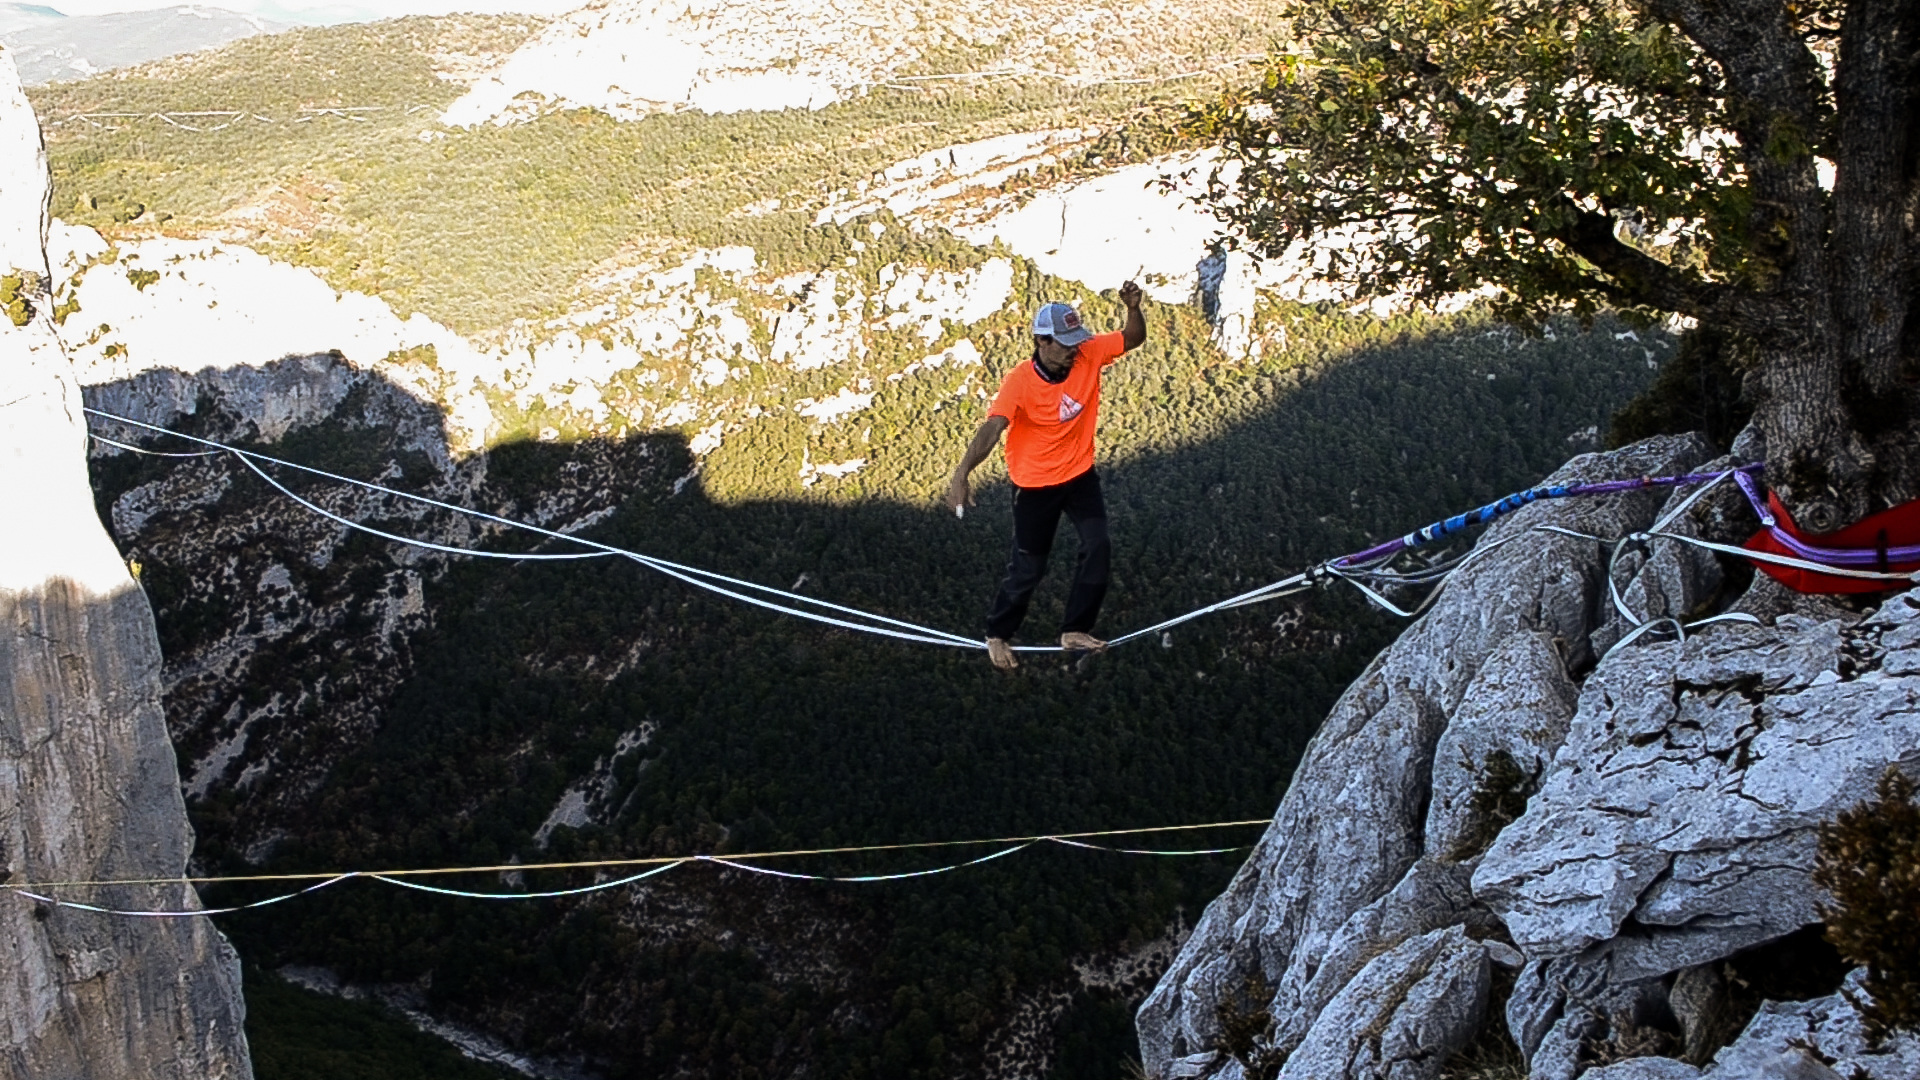 slackline highline friedi kühne free solo world record weltrekord no safety